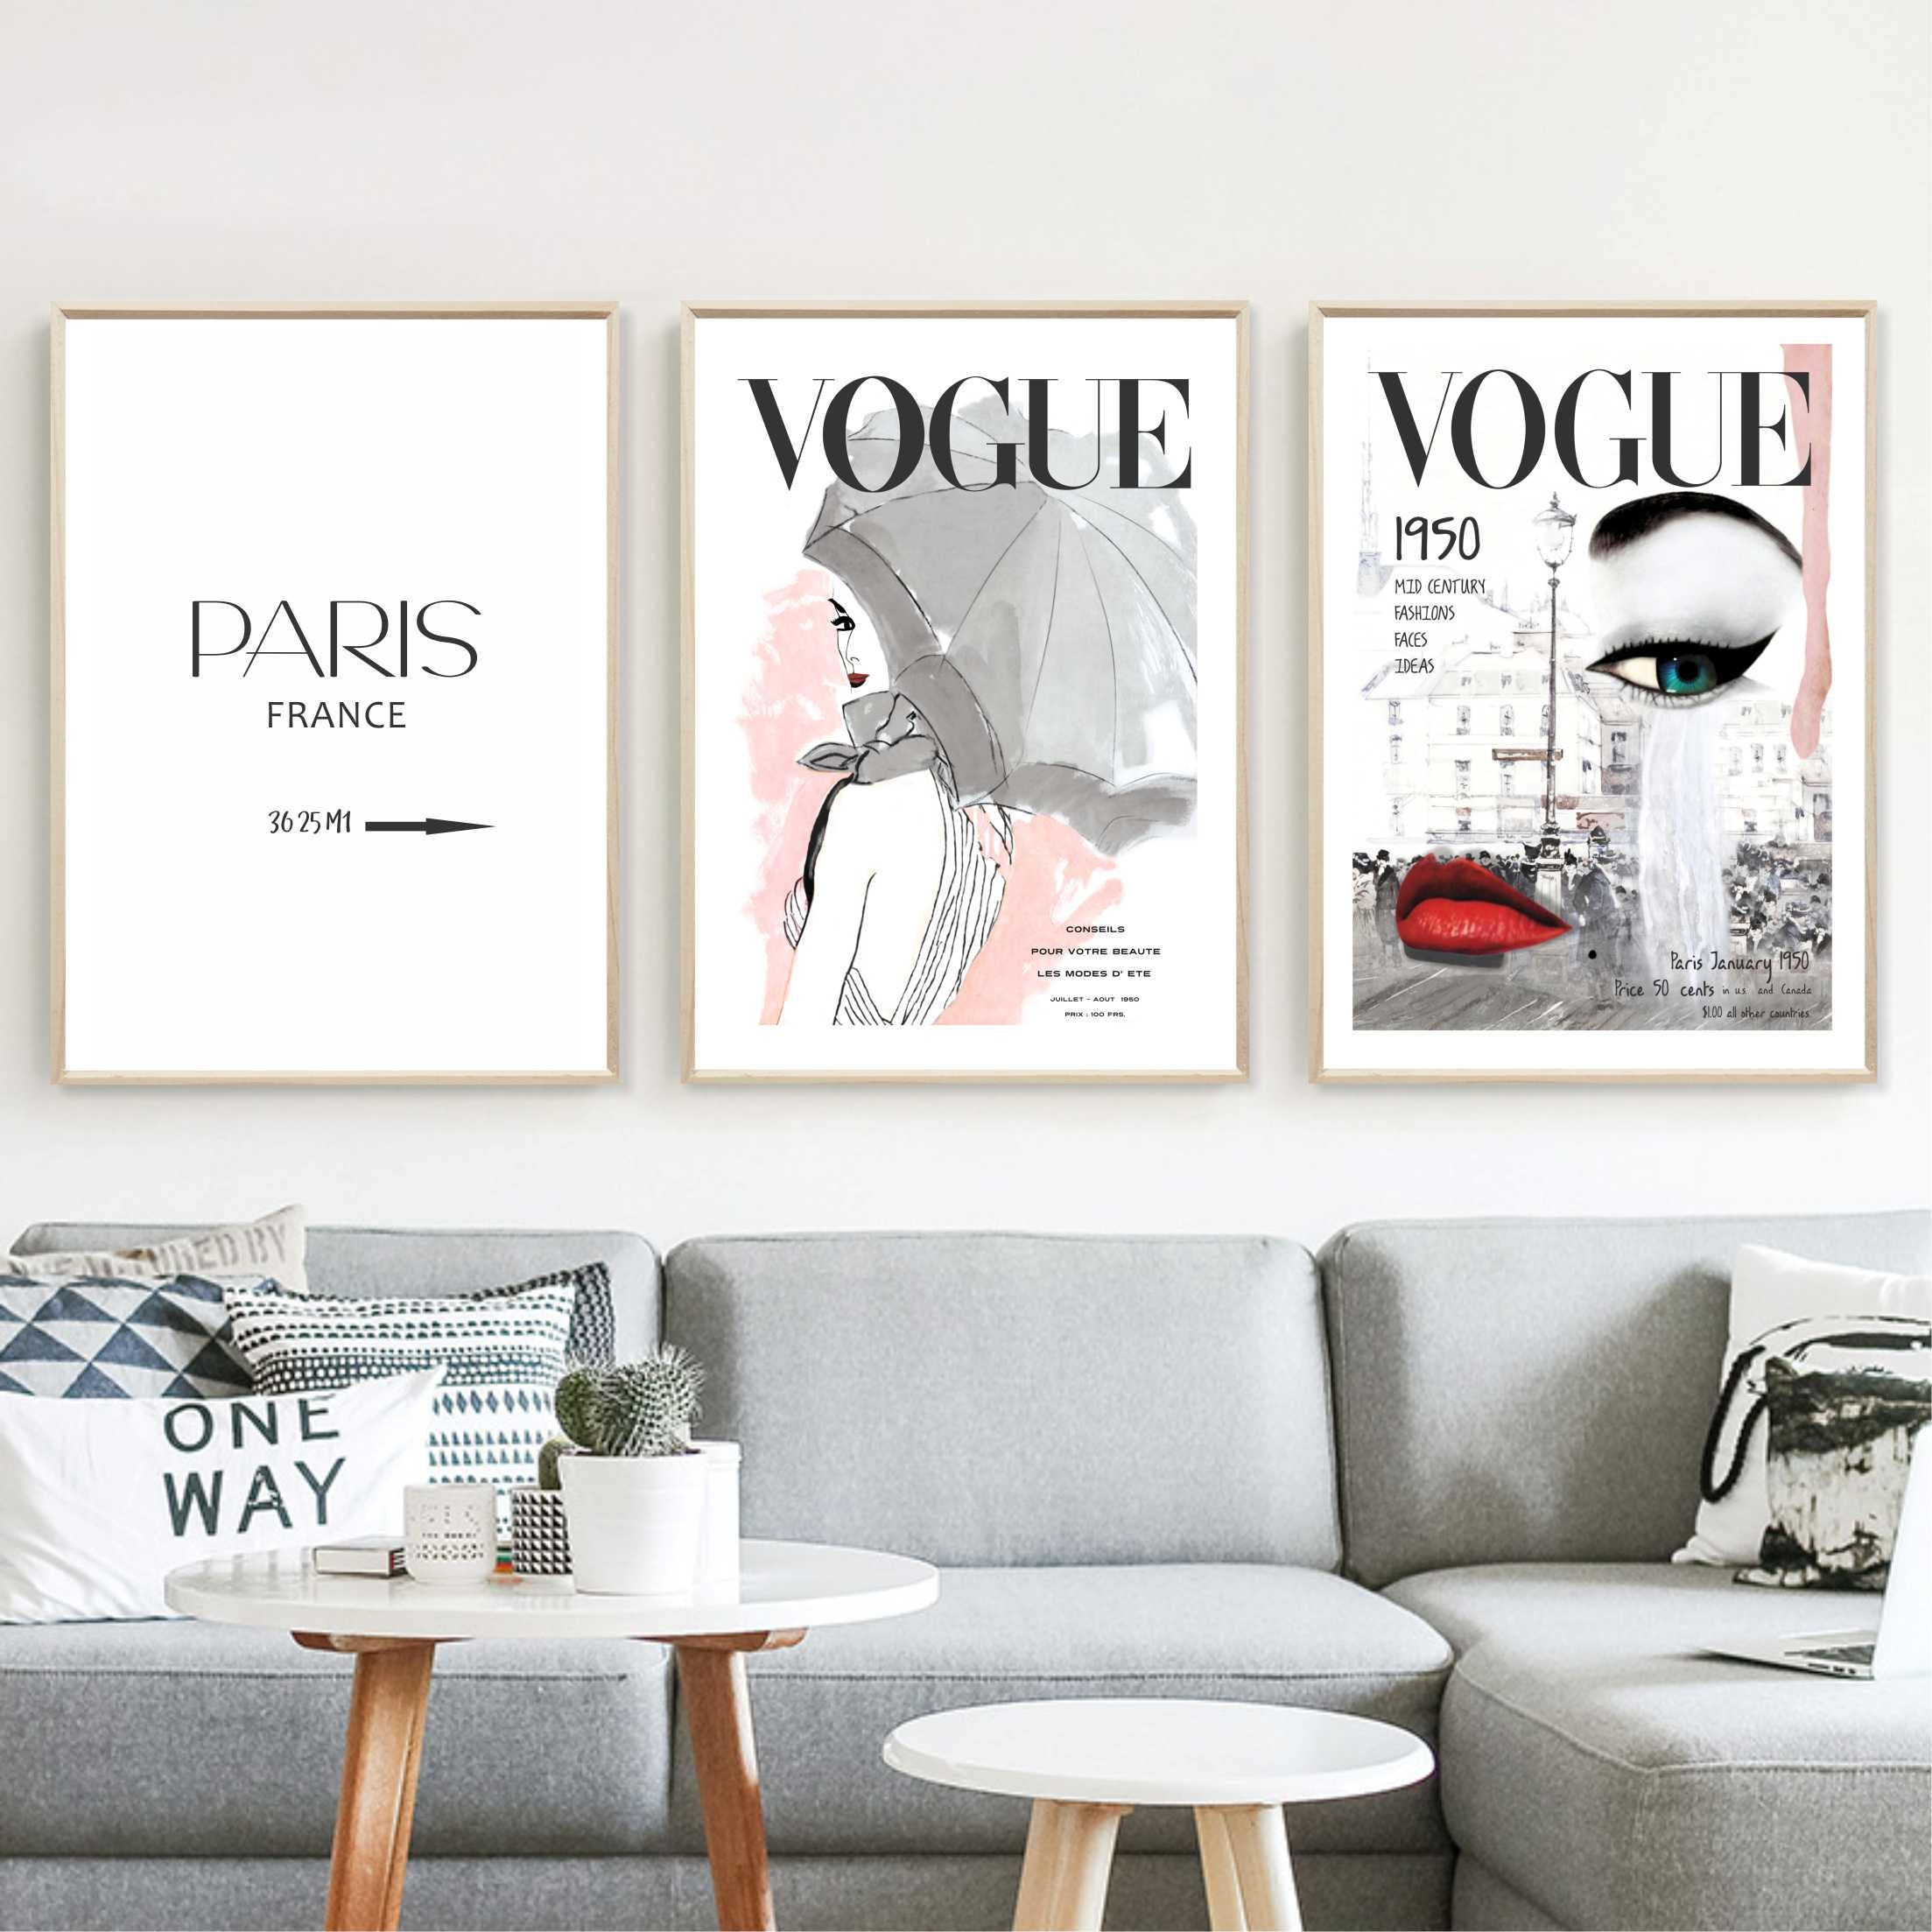 Vogue Posters Fashion Wall Art Set Of 3 Prints Home Decor